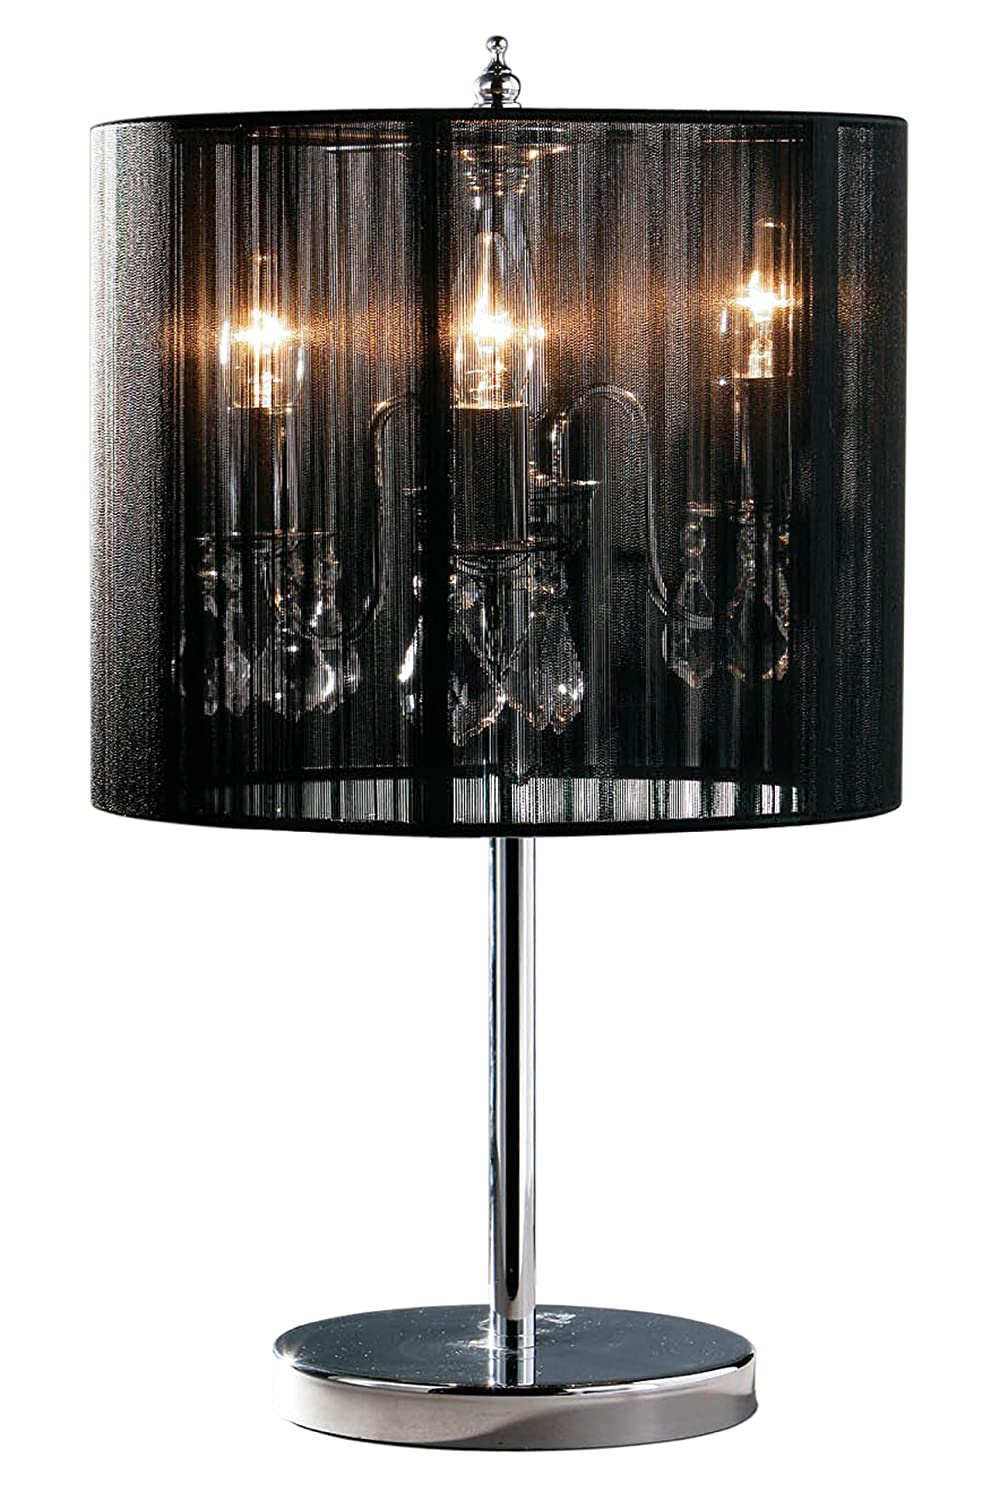 Premier Housewares Chandelier Table Lamp with Fabric Shade - Black ...